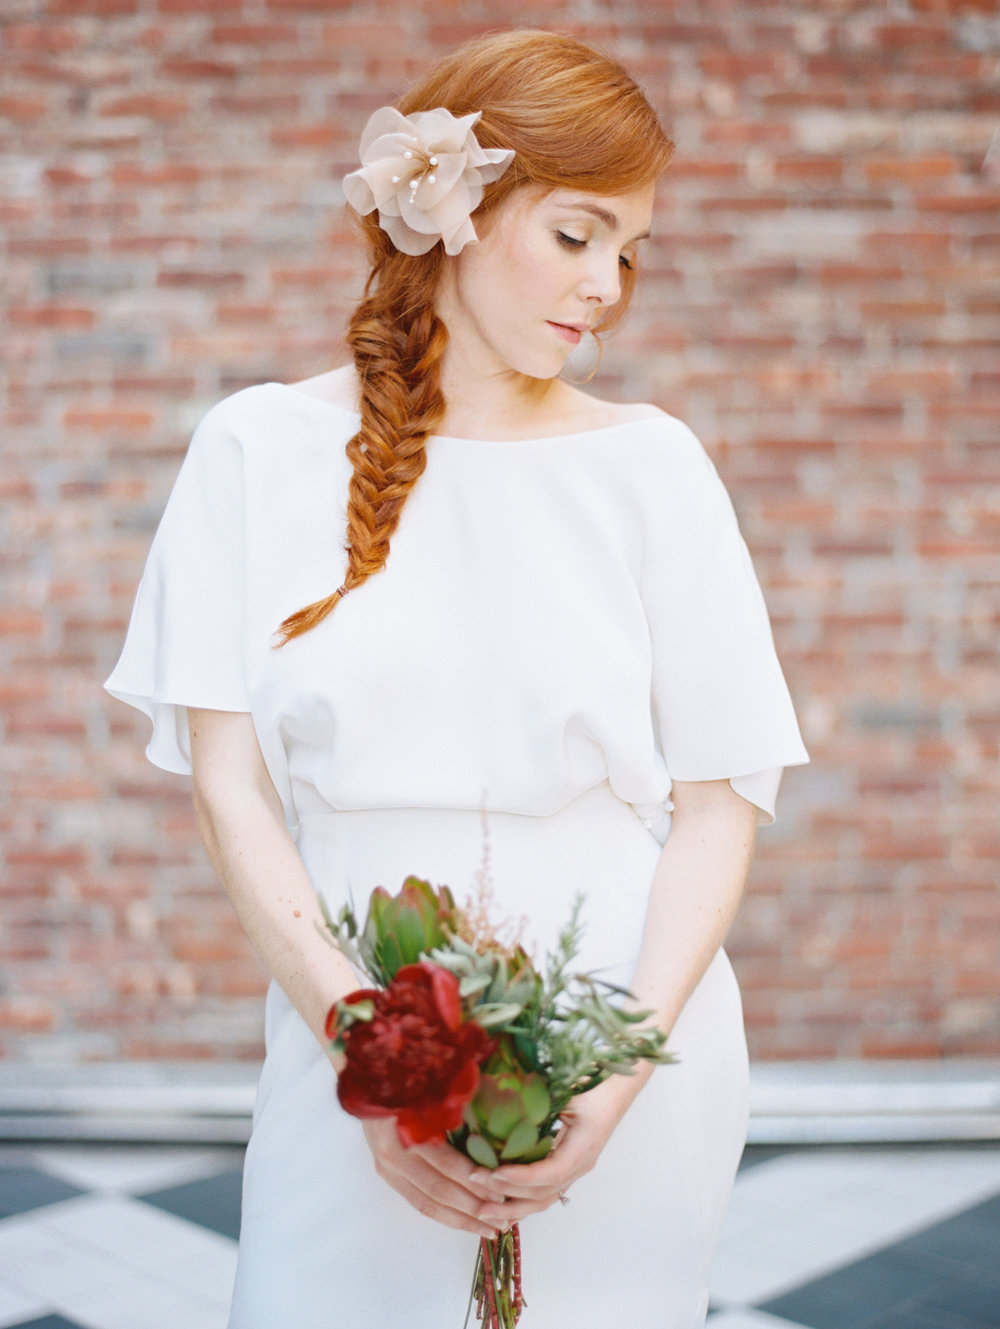 whymsical blush hair flower pearl hushed commotion fish tail braid